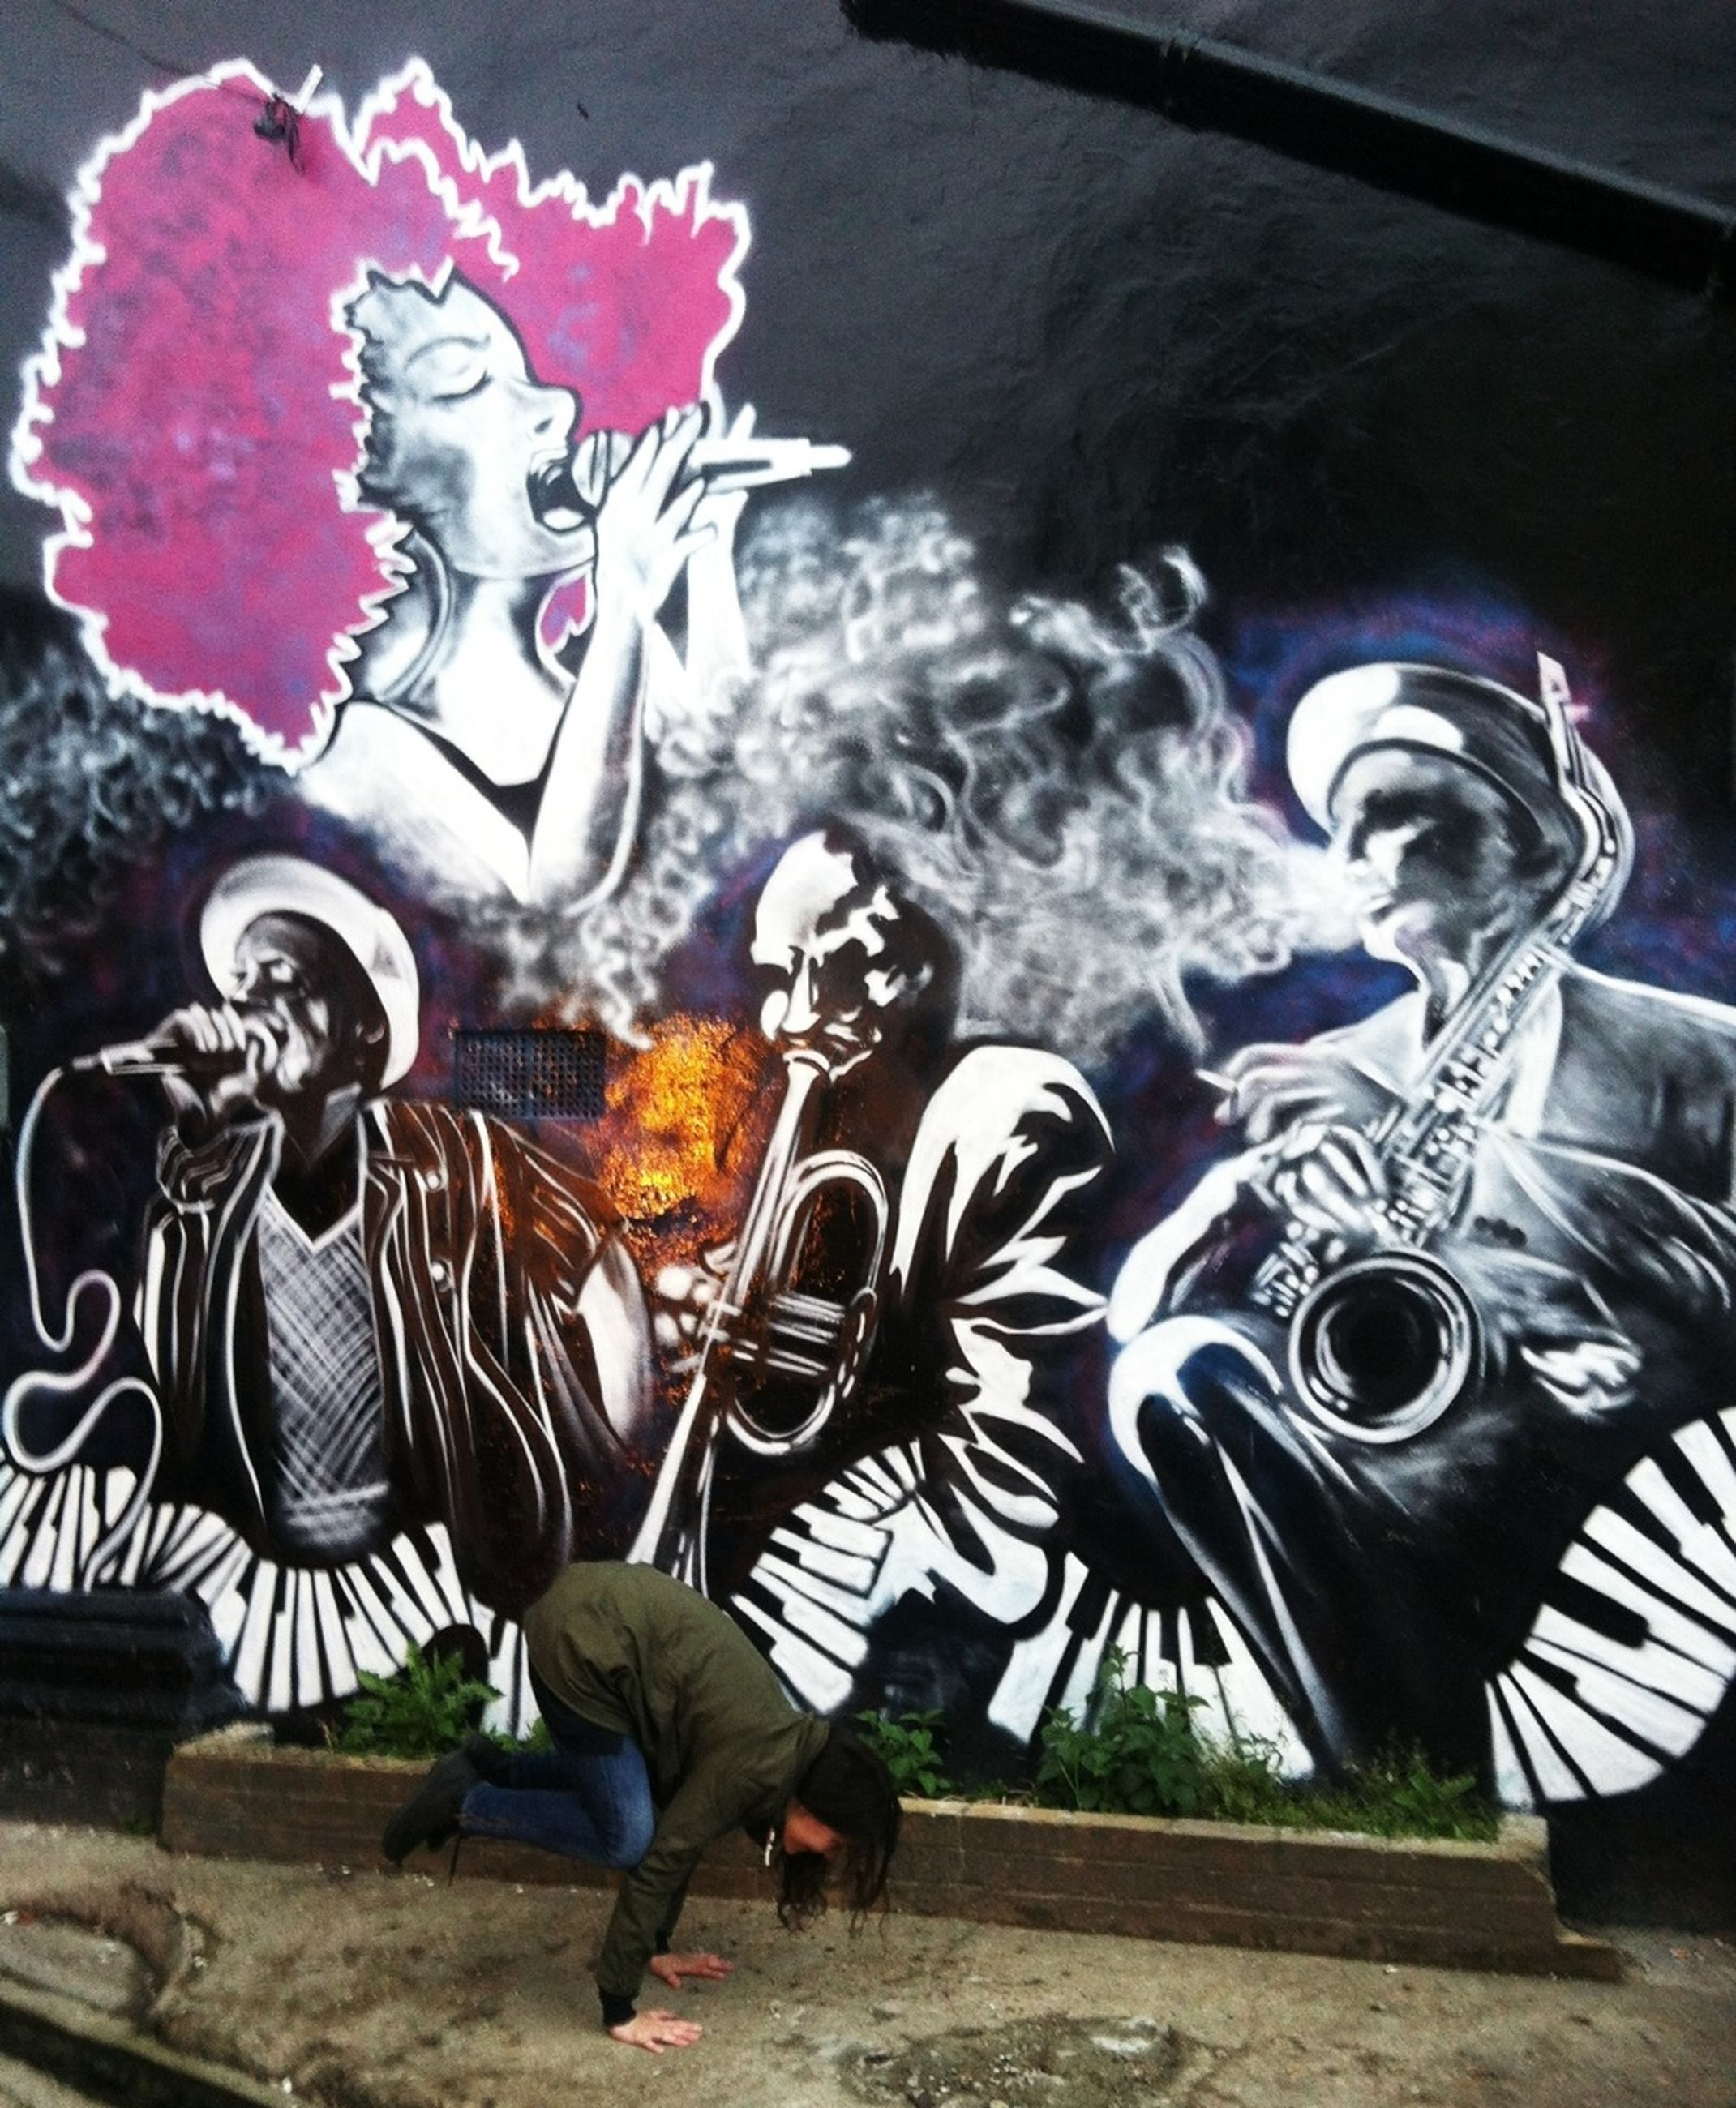 art, art and craft, creativity, animal representation, human representation, sculpture, statue, craft, multi colored, graffiti, animal themes, no people, outdoors, decoration, day, built structure, mural, cultures